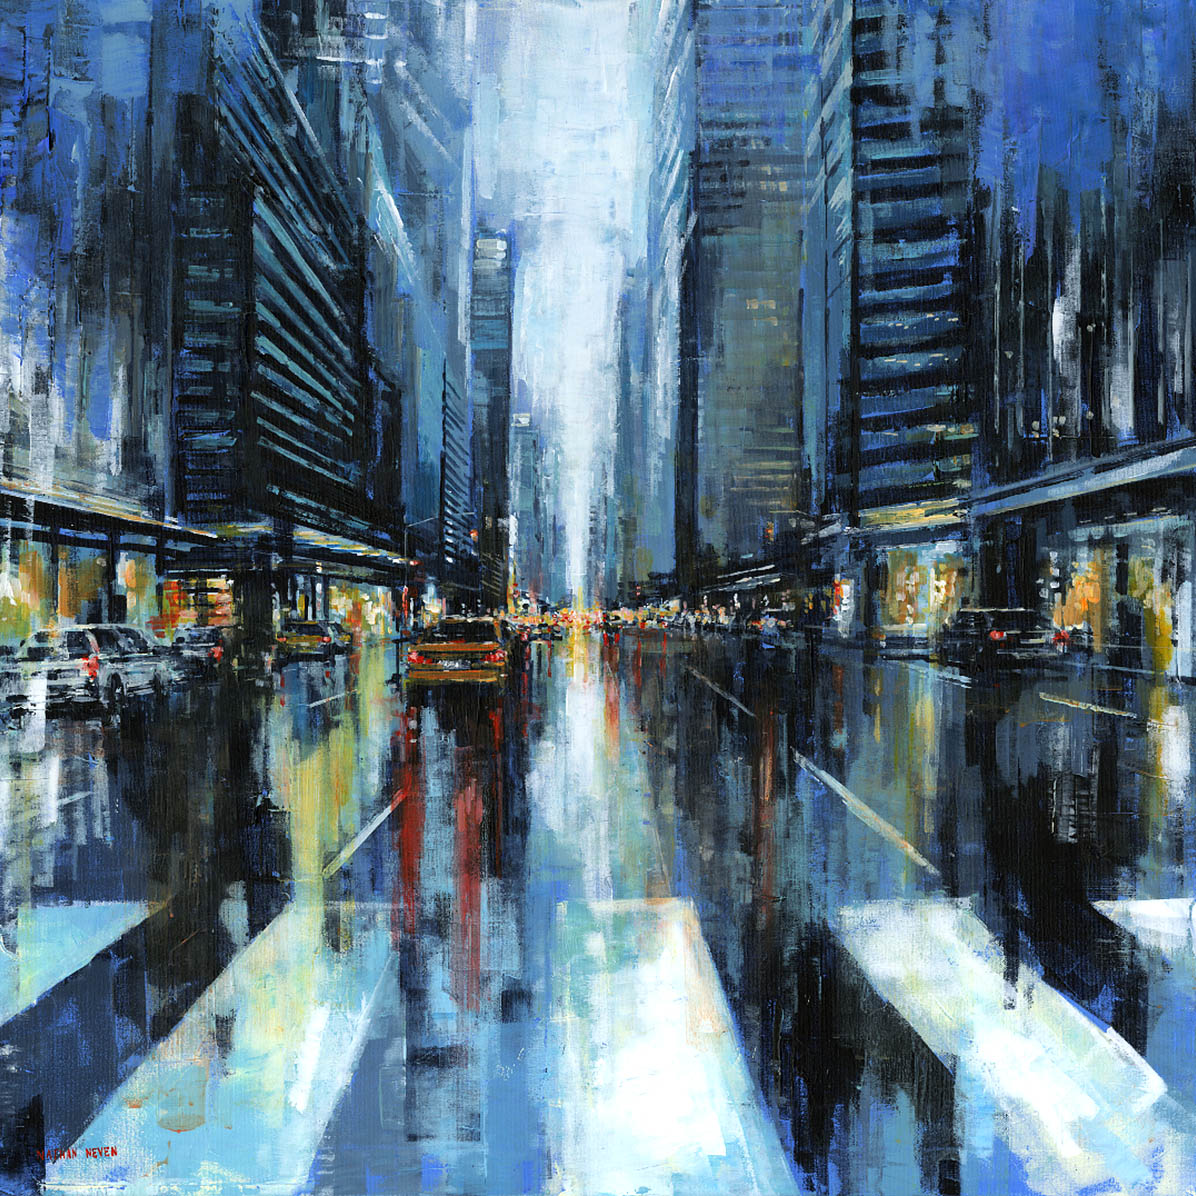 Nathan Neven, 'Midtown Vibe' oil on canvas